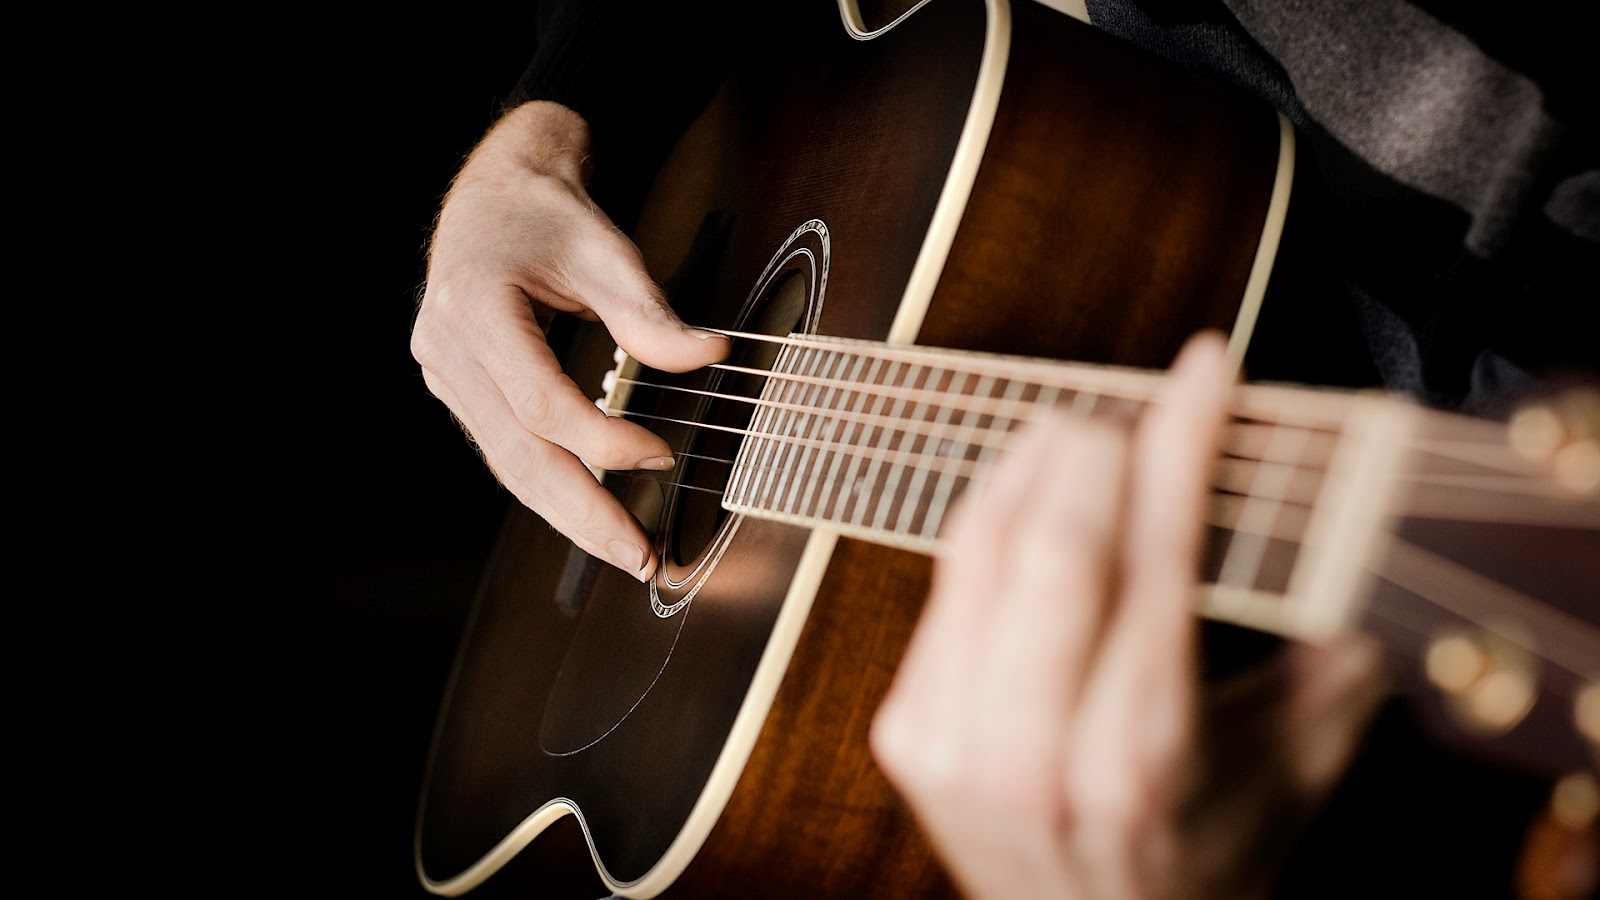 Acoustic Wallpaper: BEST HD GUITAR WALLAPPERS